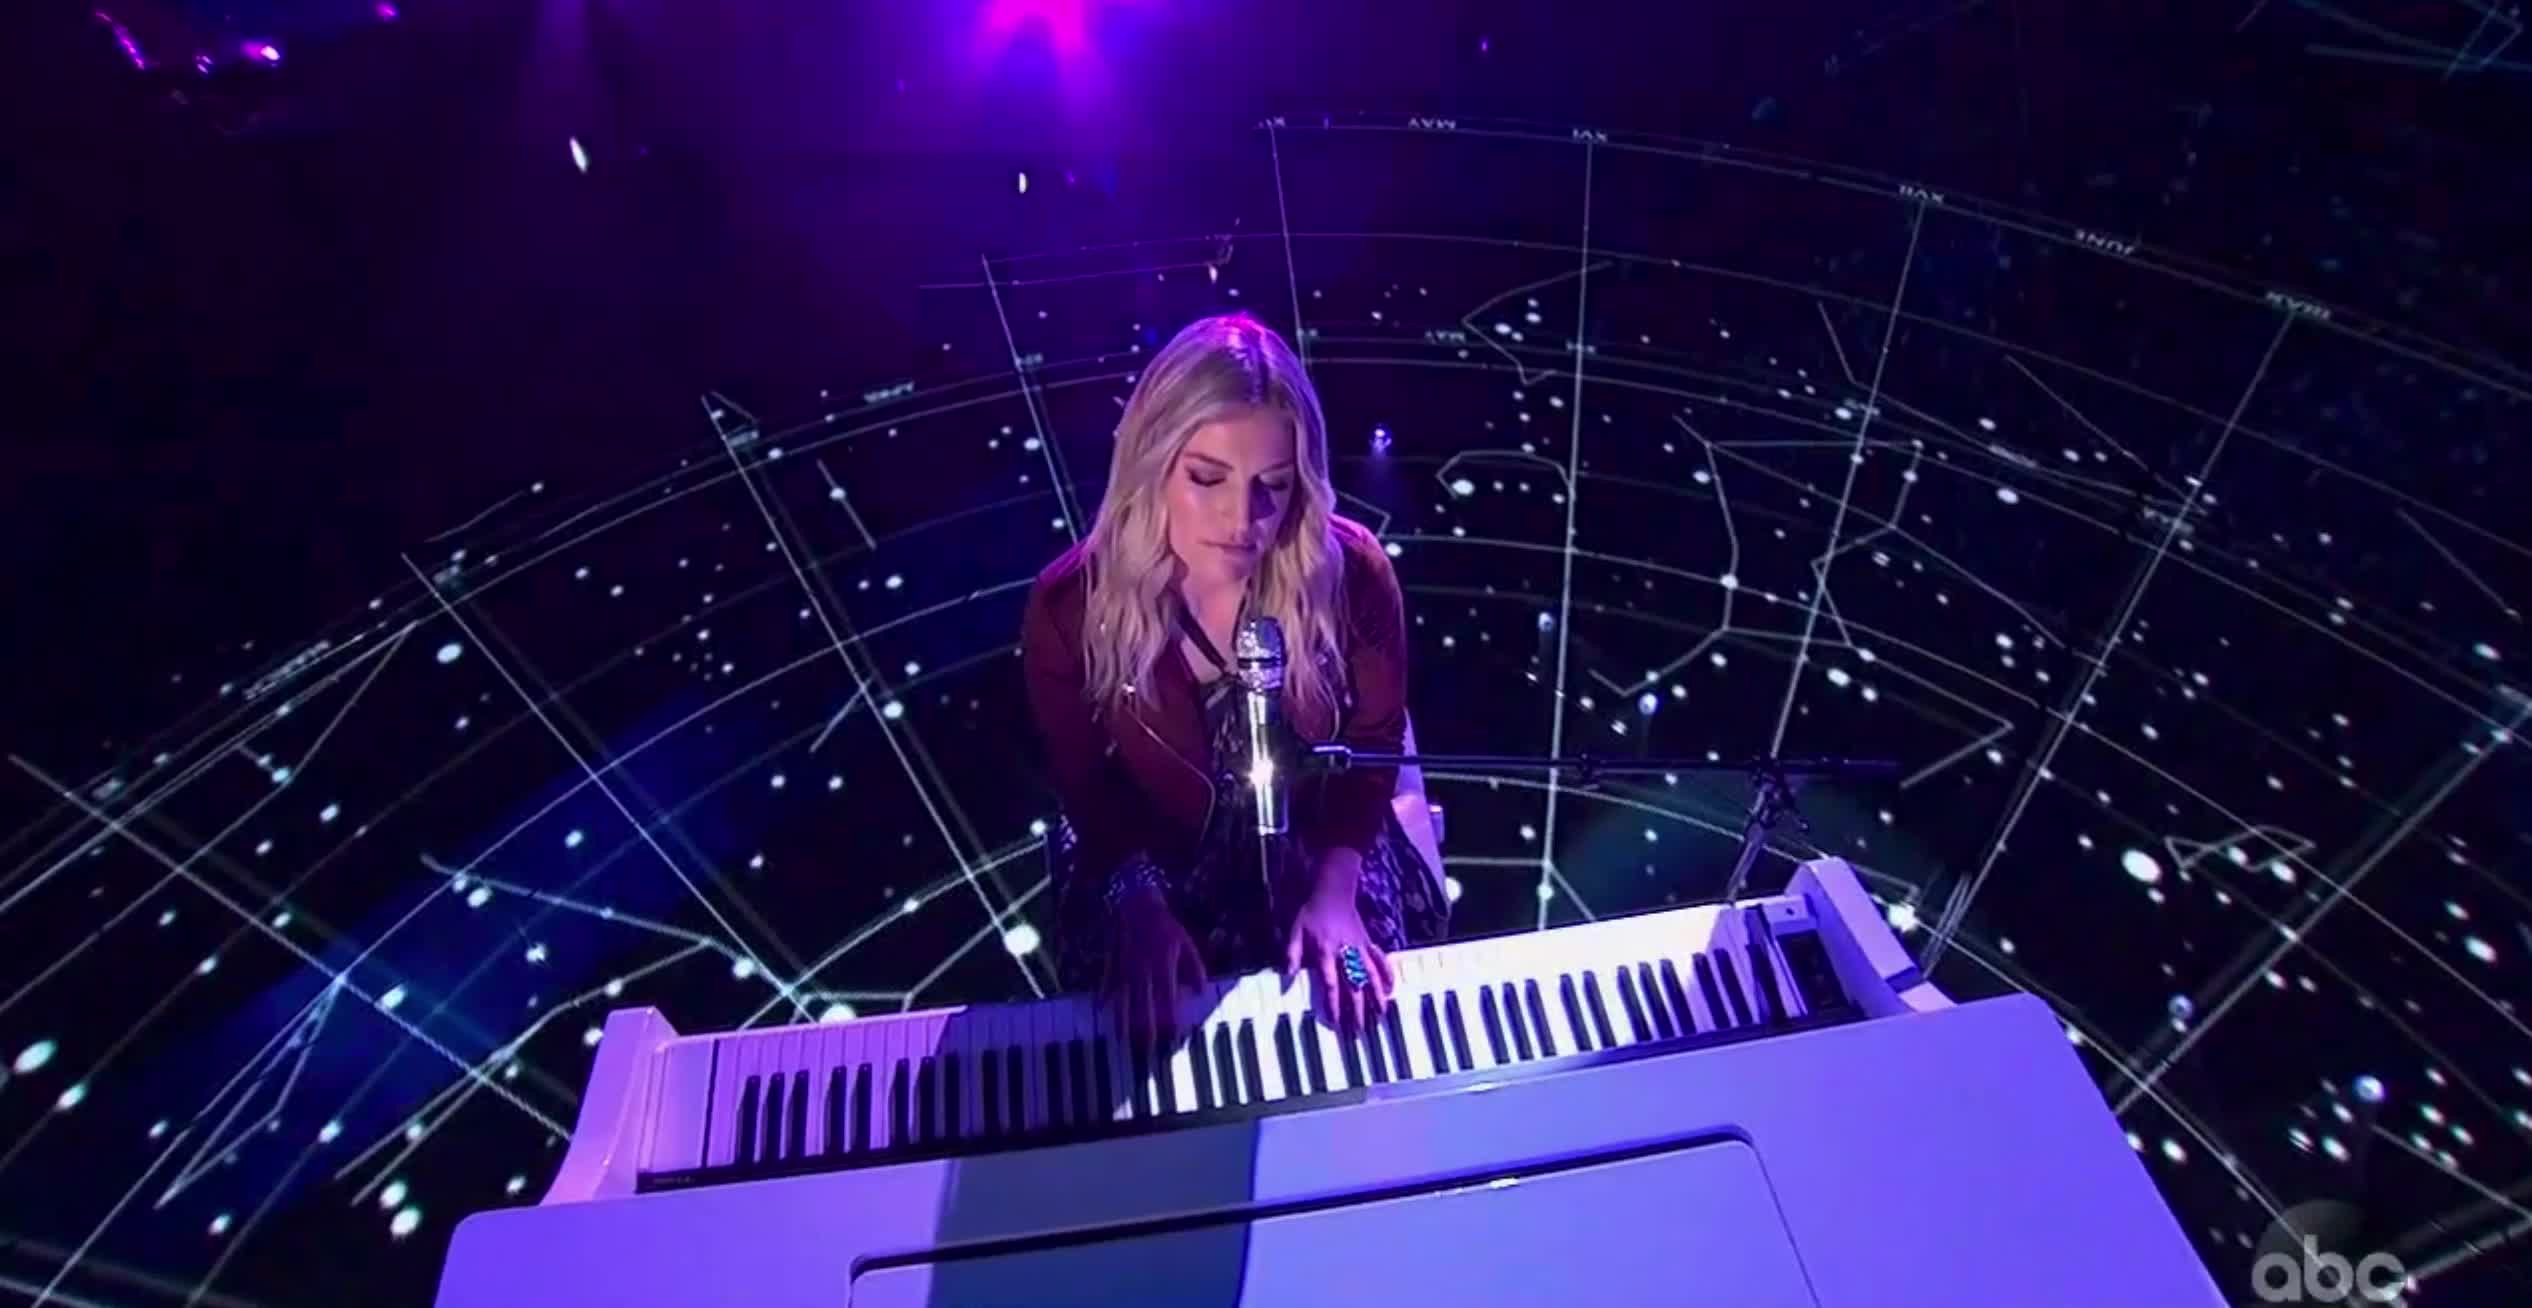 american idol, american idol season 17, americanidol, ashley hess, katy perry, lionel richie, luke bryan, ryan seacrest, season 17, singing, American Idol Ashley Sings Coldplay GIFs